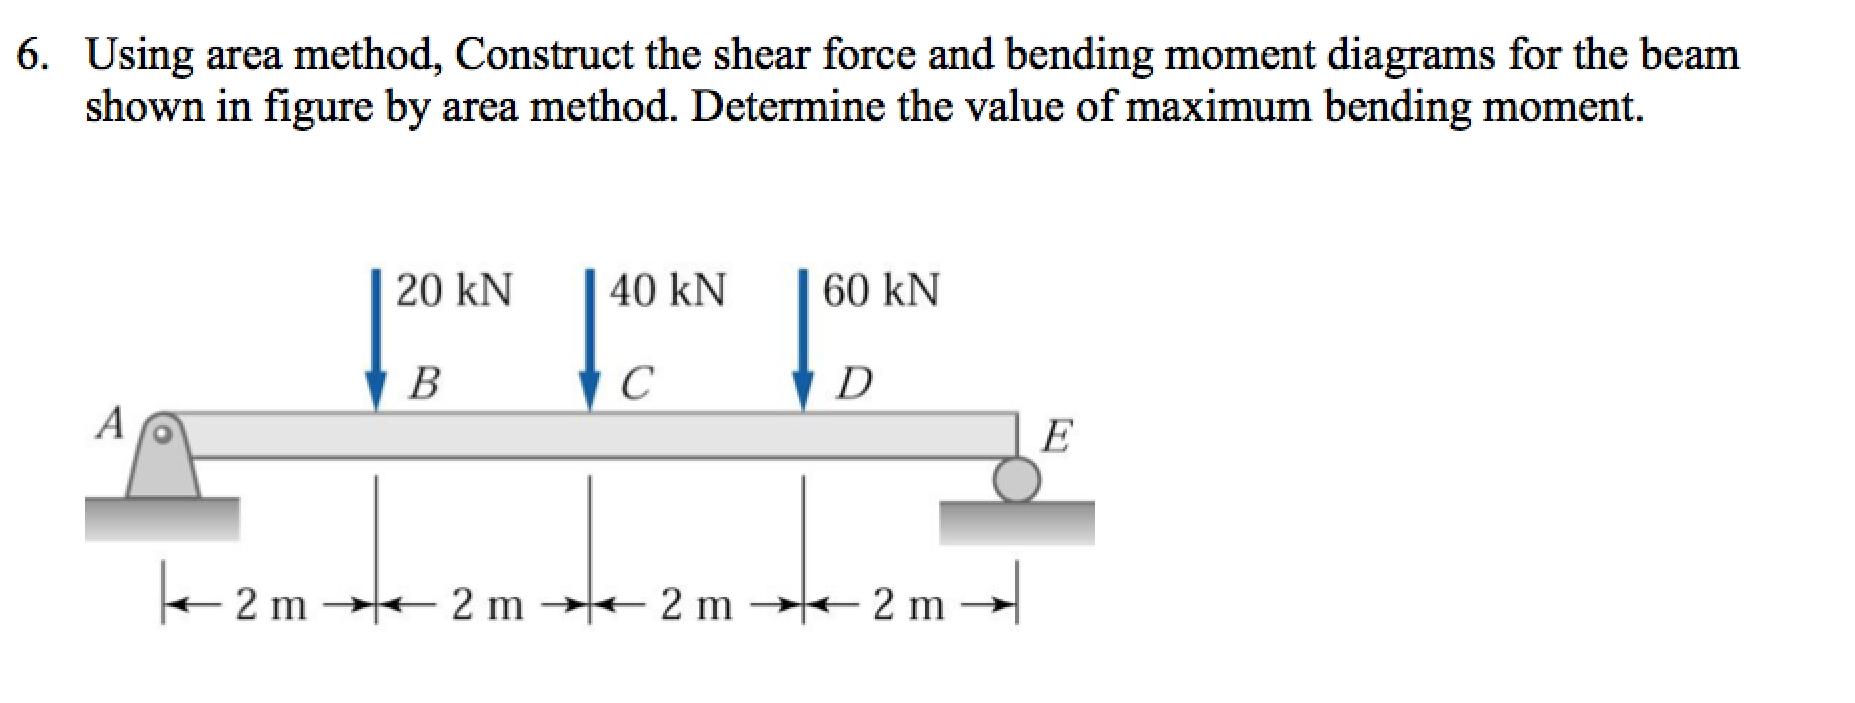 Shear Force Diagram Solver The Structural Wiring Draw And Bending Moment Diagrams Of Beamshown Solved Using Area Method Construct B Calculator Creator